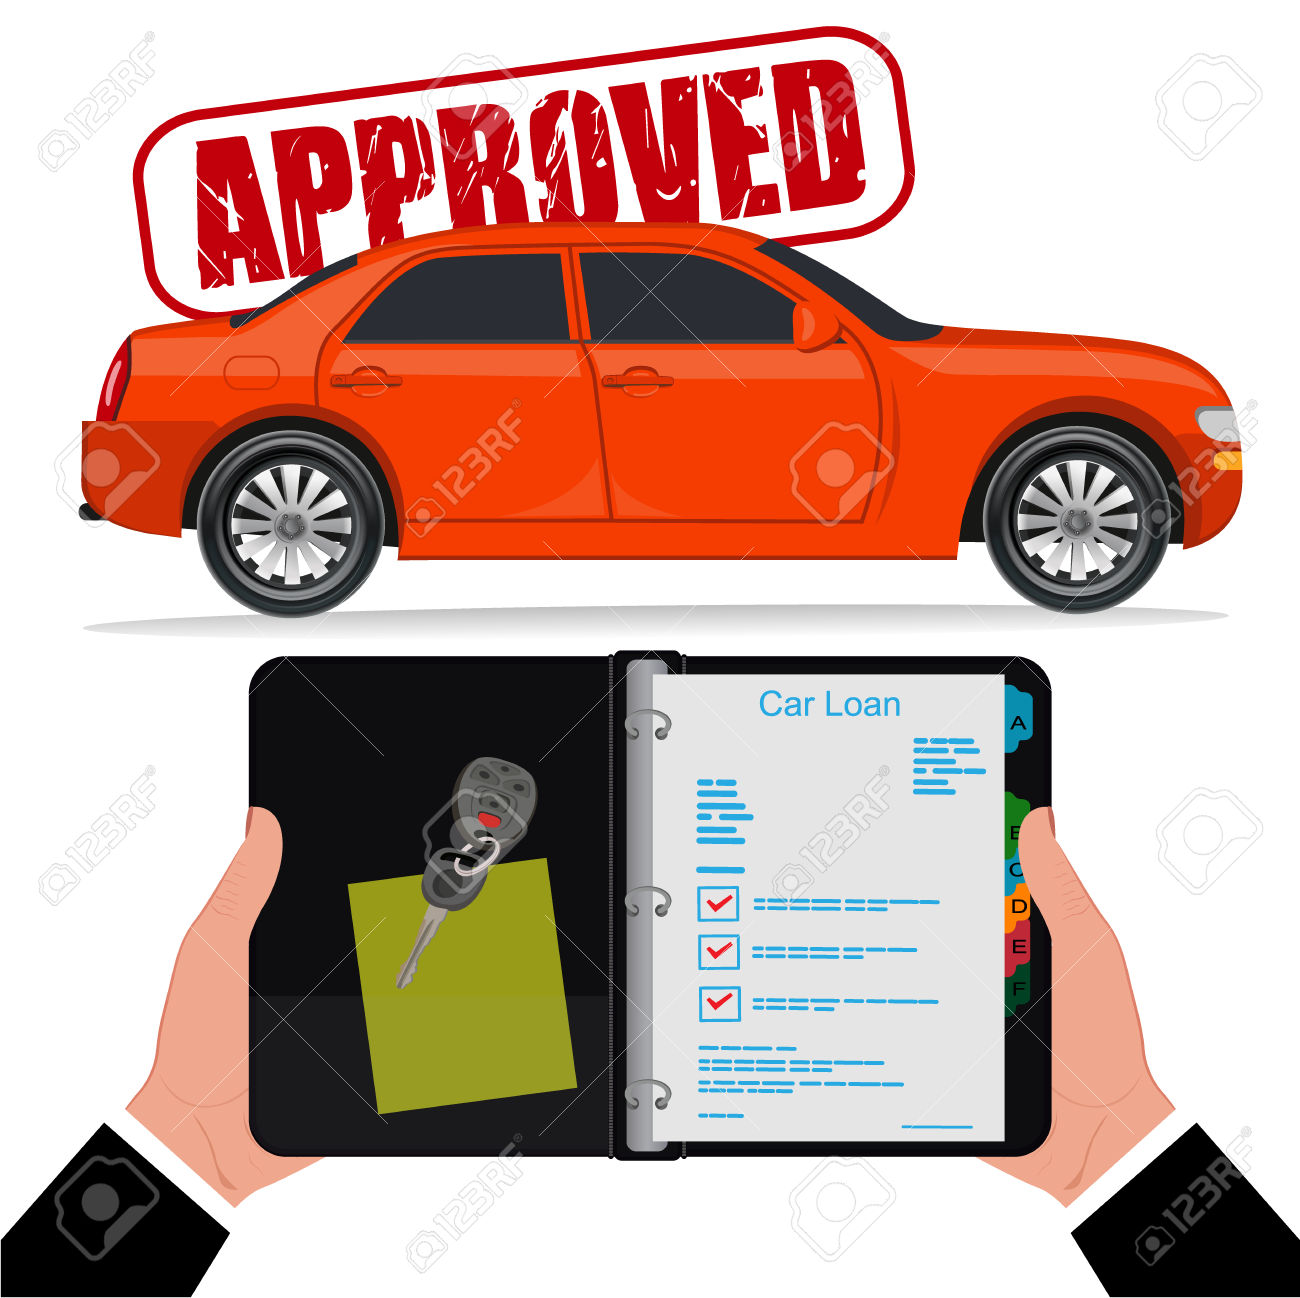 Car loan clipart png freeuse library Approved Car Loan, Vector Illustration, Flat Style Royalty Free ... png freeuse library